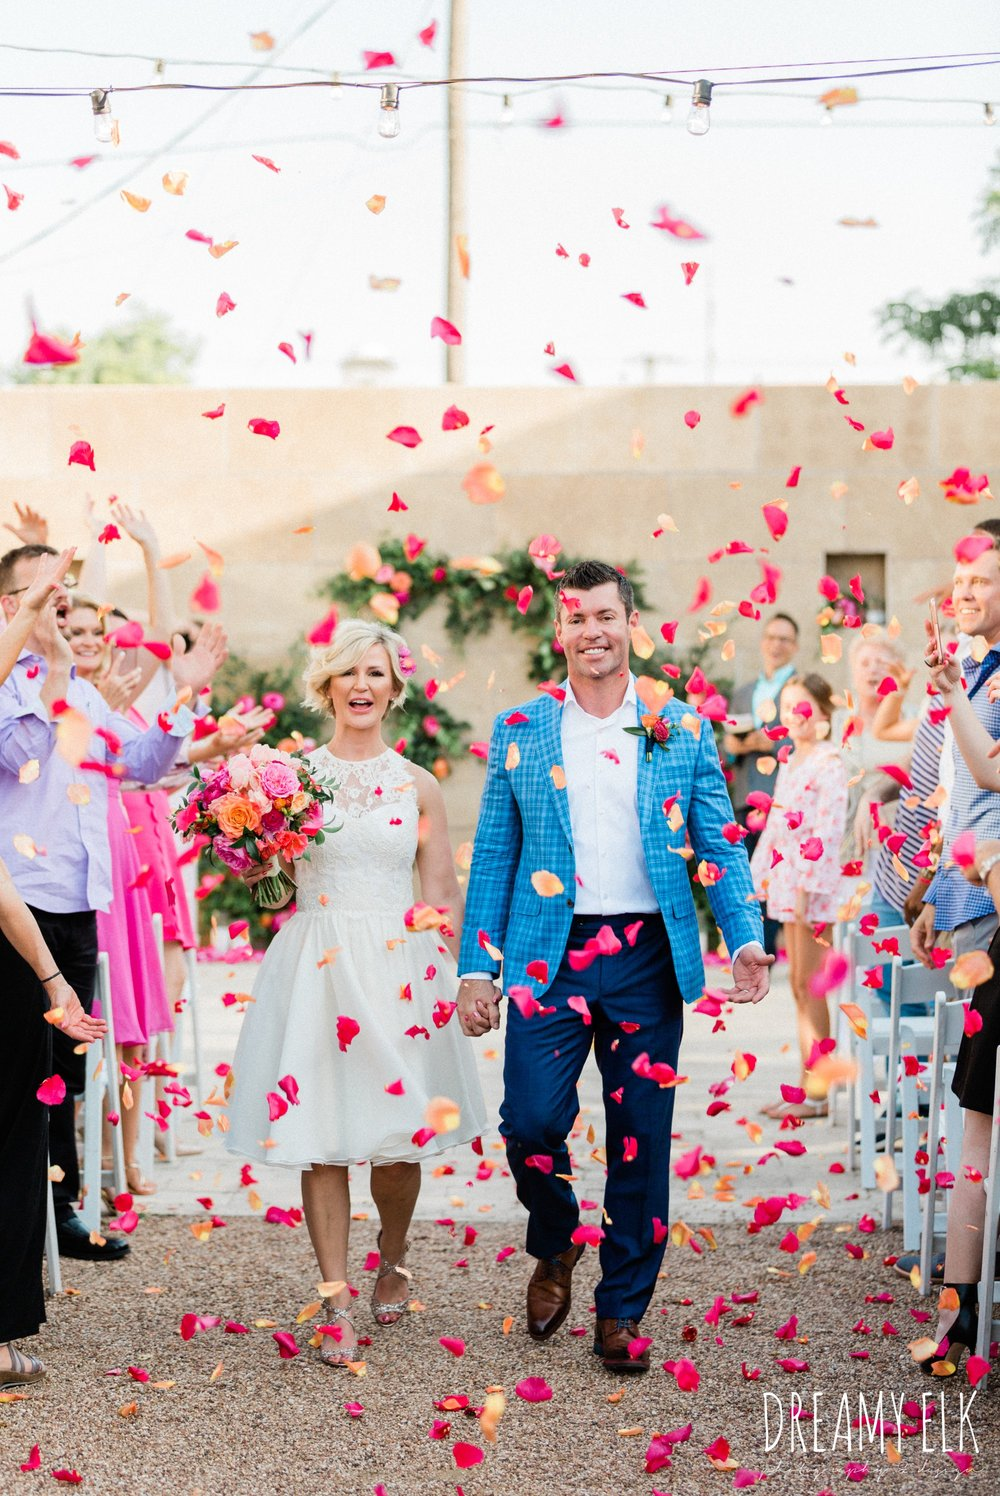 spring colorful pink orange wedding photo, fort worth, texas, dreamy elk photography and design, jen rios weddings, kate foley designs